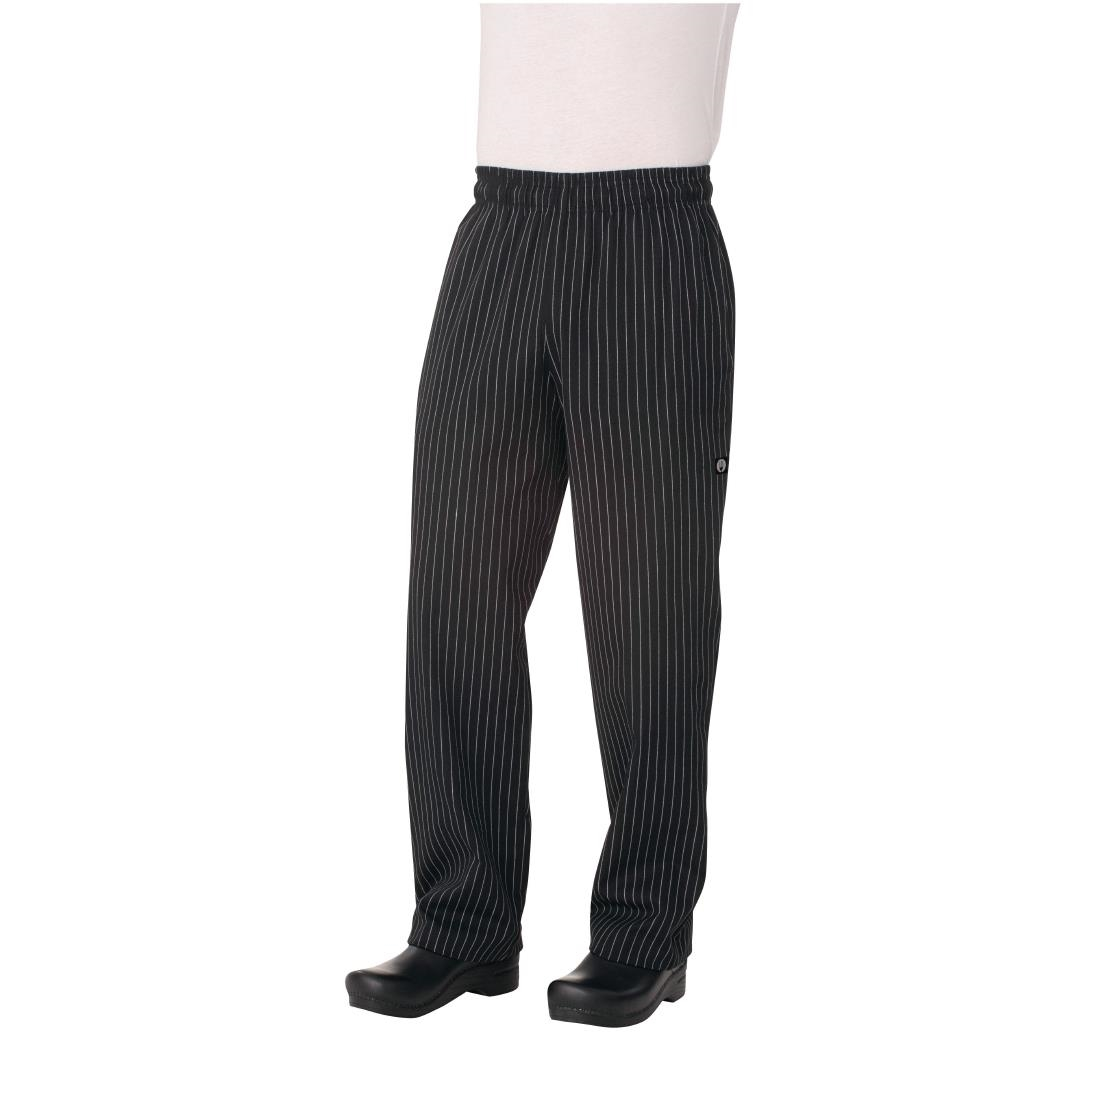 Image of Chef Works Designer Baggy Chefs Trousers Pinstripe 2XL